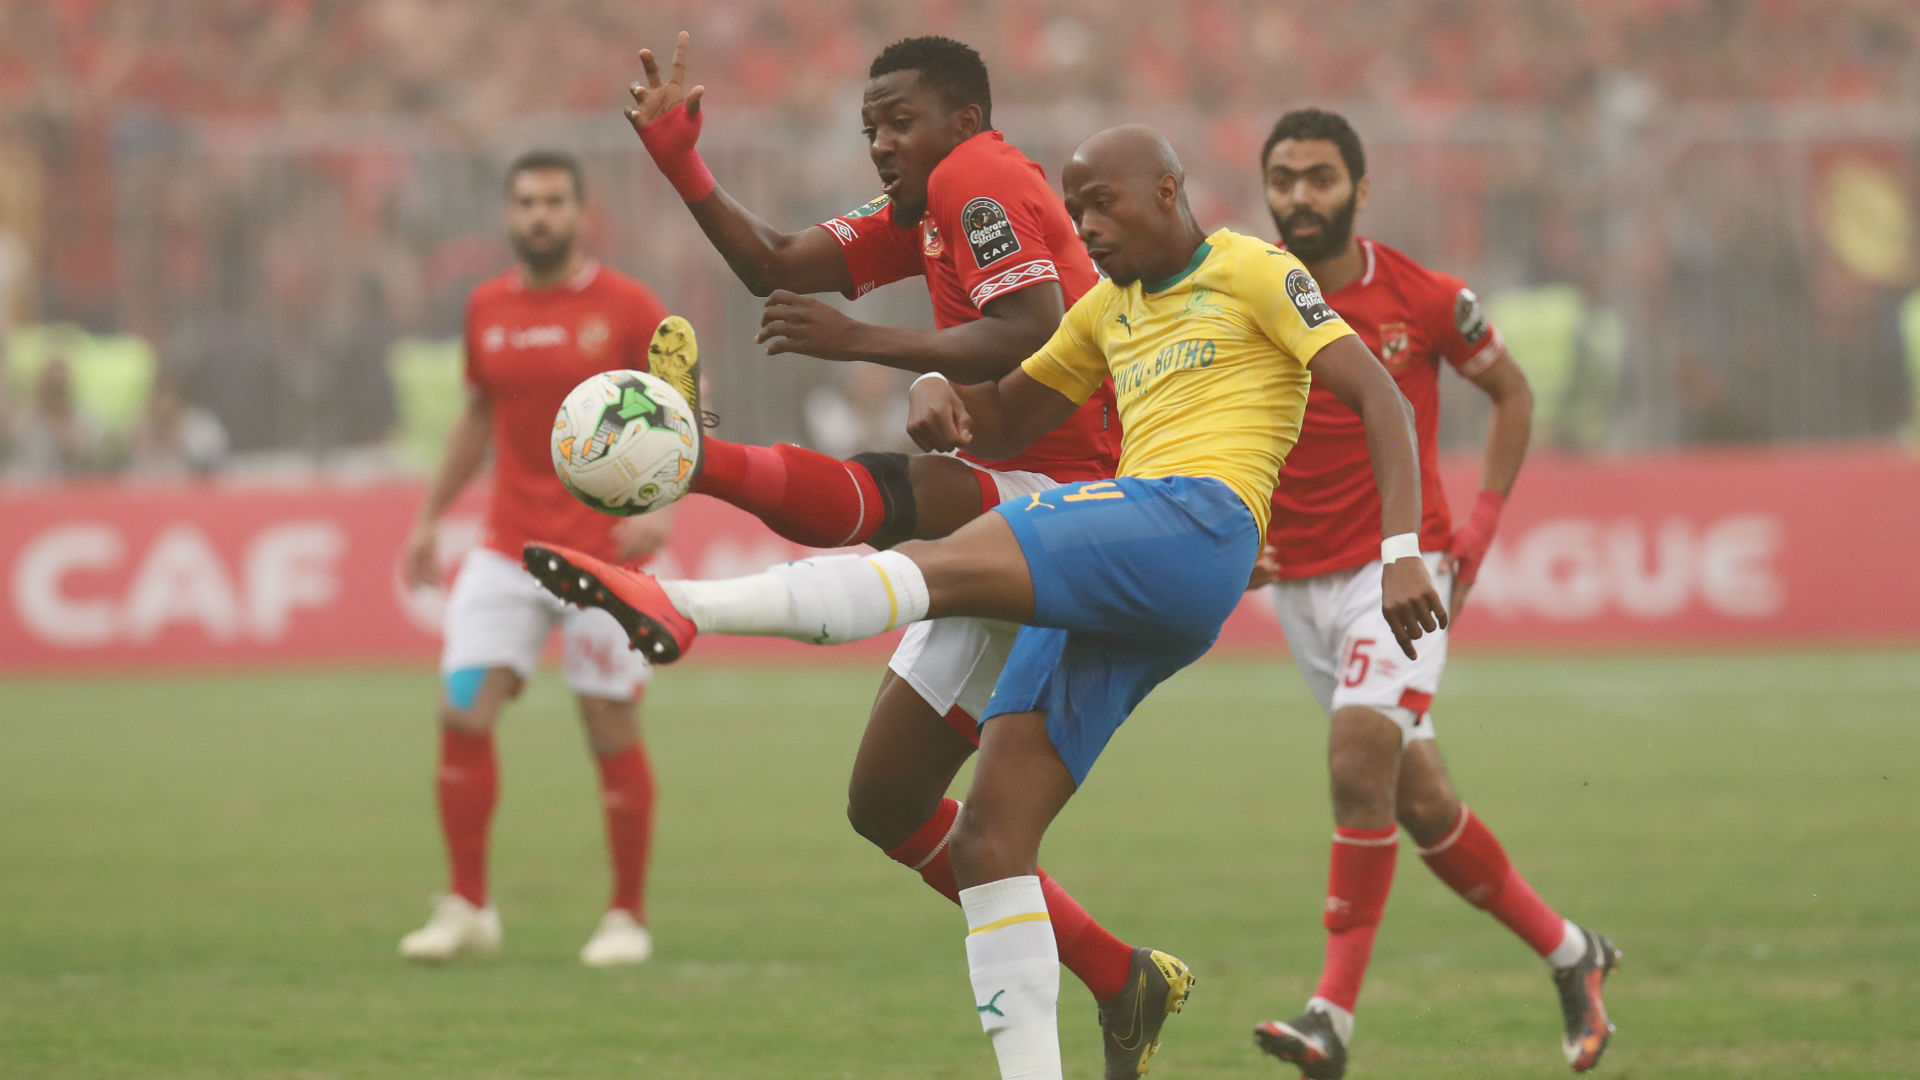 Al Ahly v Mamelodi Sundowns, April 2019